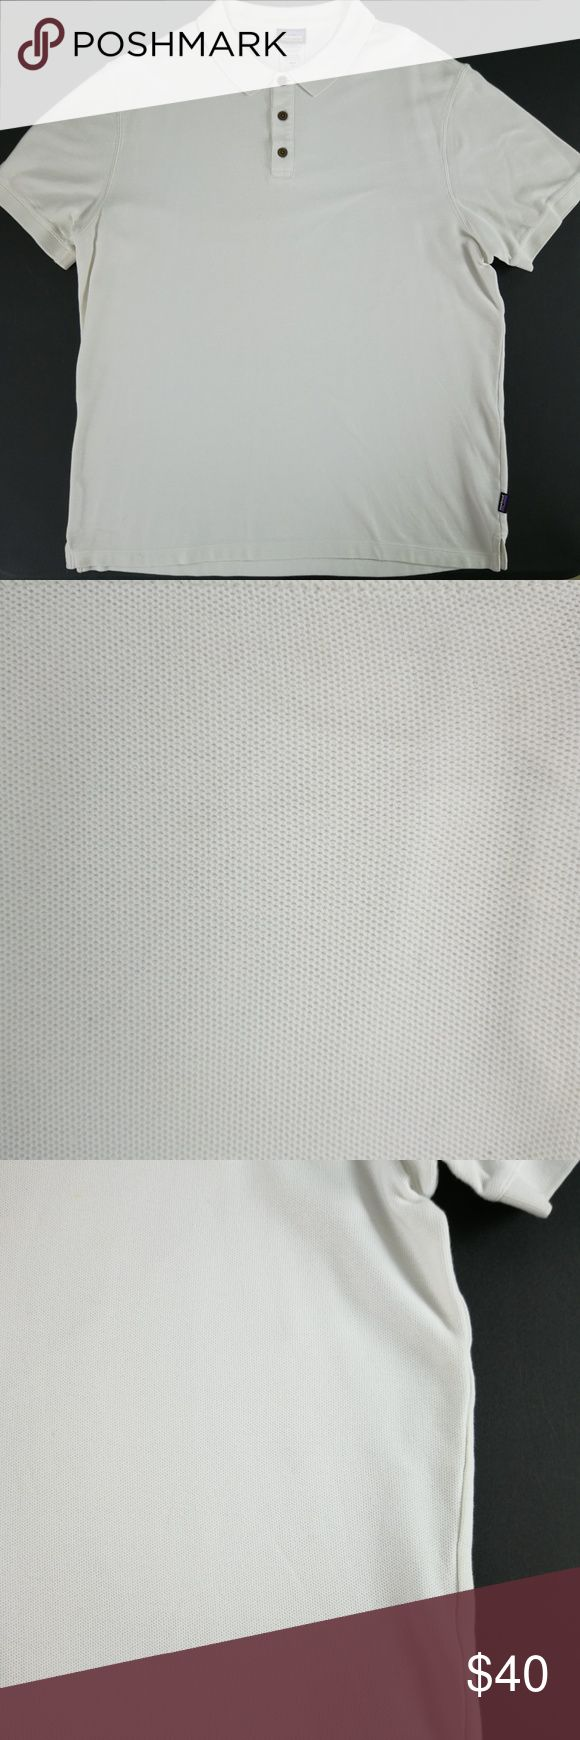 Men's XL White Organic Cotton Polo Shirt Patagonia For sale is a shirt from Patagonia with 100% organic cotton. The shirt is in great condition with no holes or tears. The color is white so there are some darker spots on it that should come out with bleaching (picture 2,3). The spare button is still attached.   Size: XL Please see pictures for measurements.   I will ship your item within 24 hours  Thank you Patagonia Shirts Polos